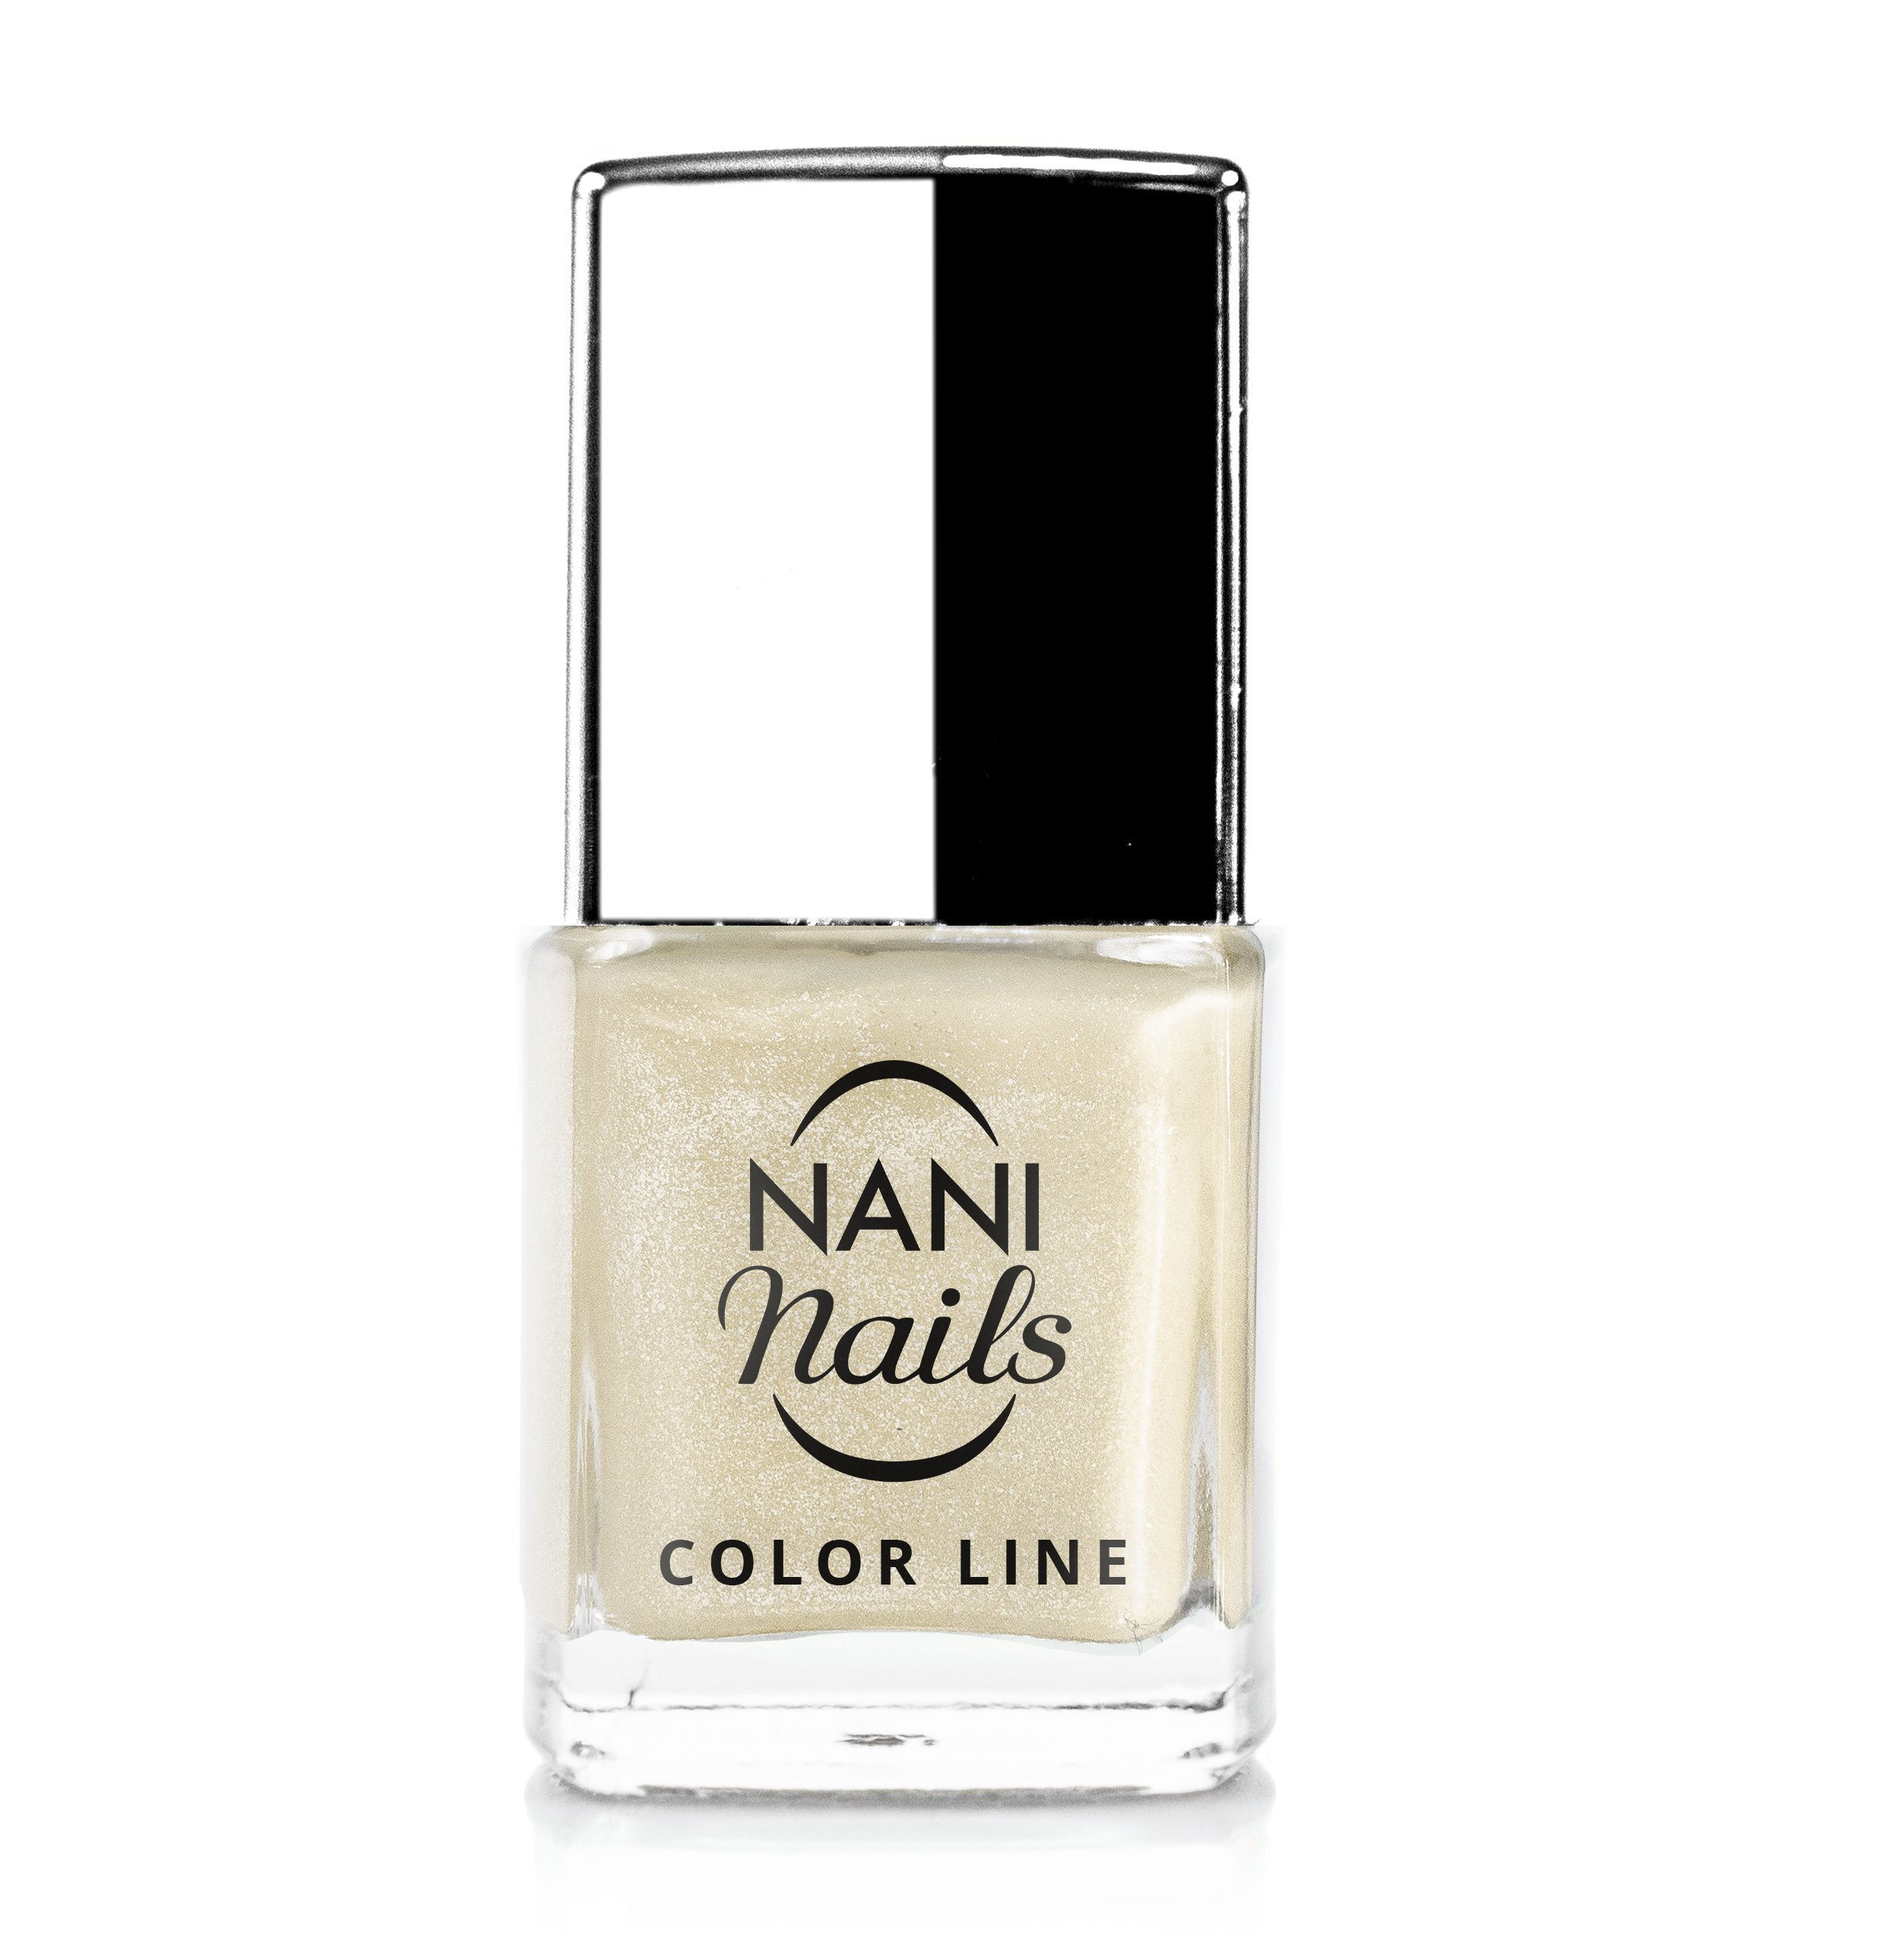 NANI lak Color Line 9 ml - 92